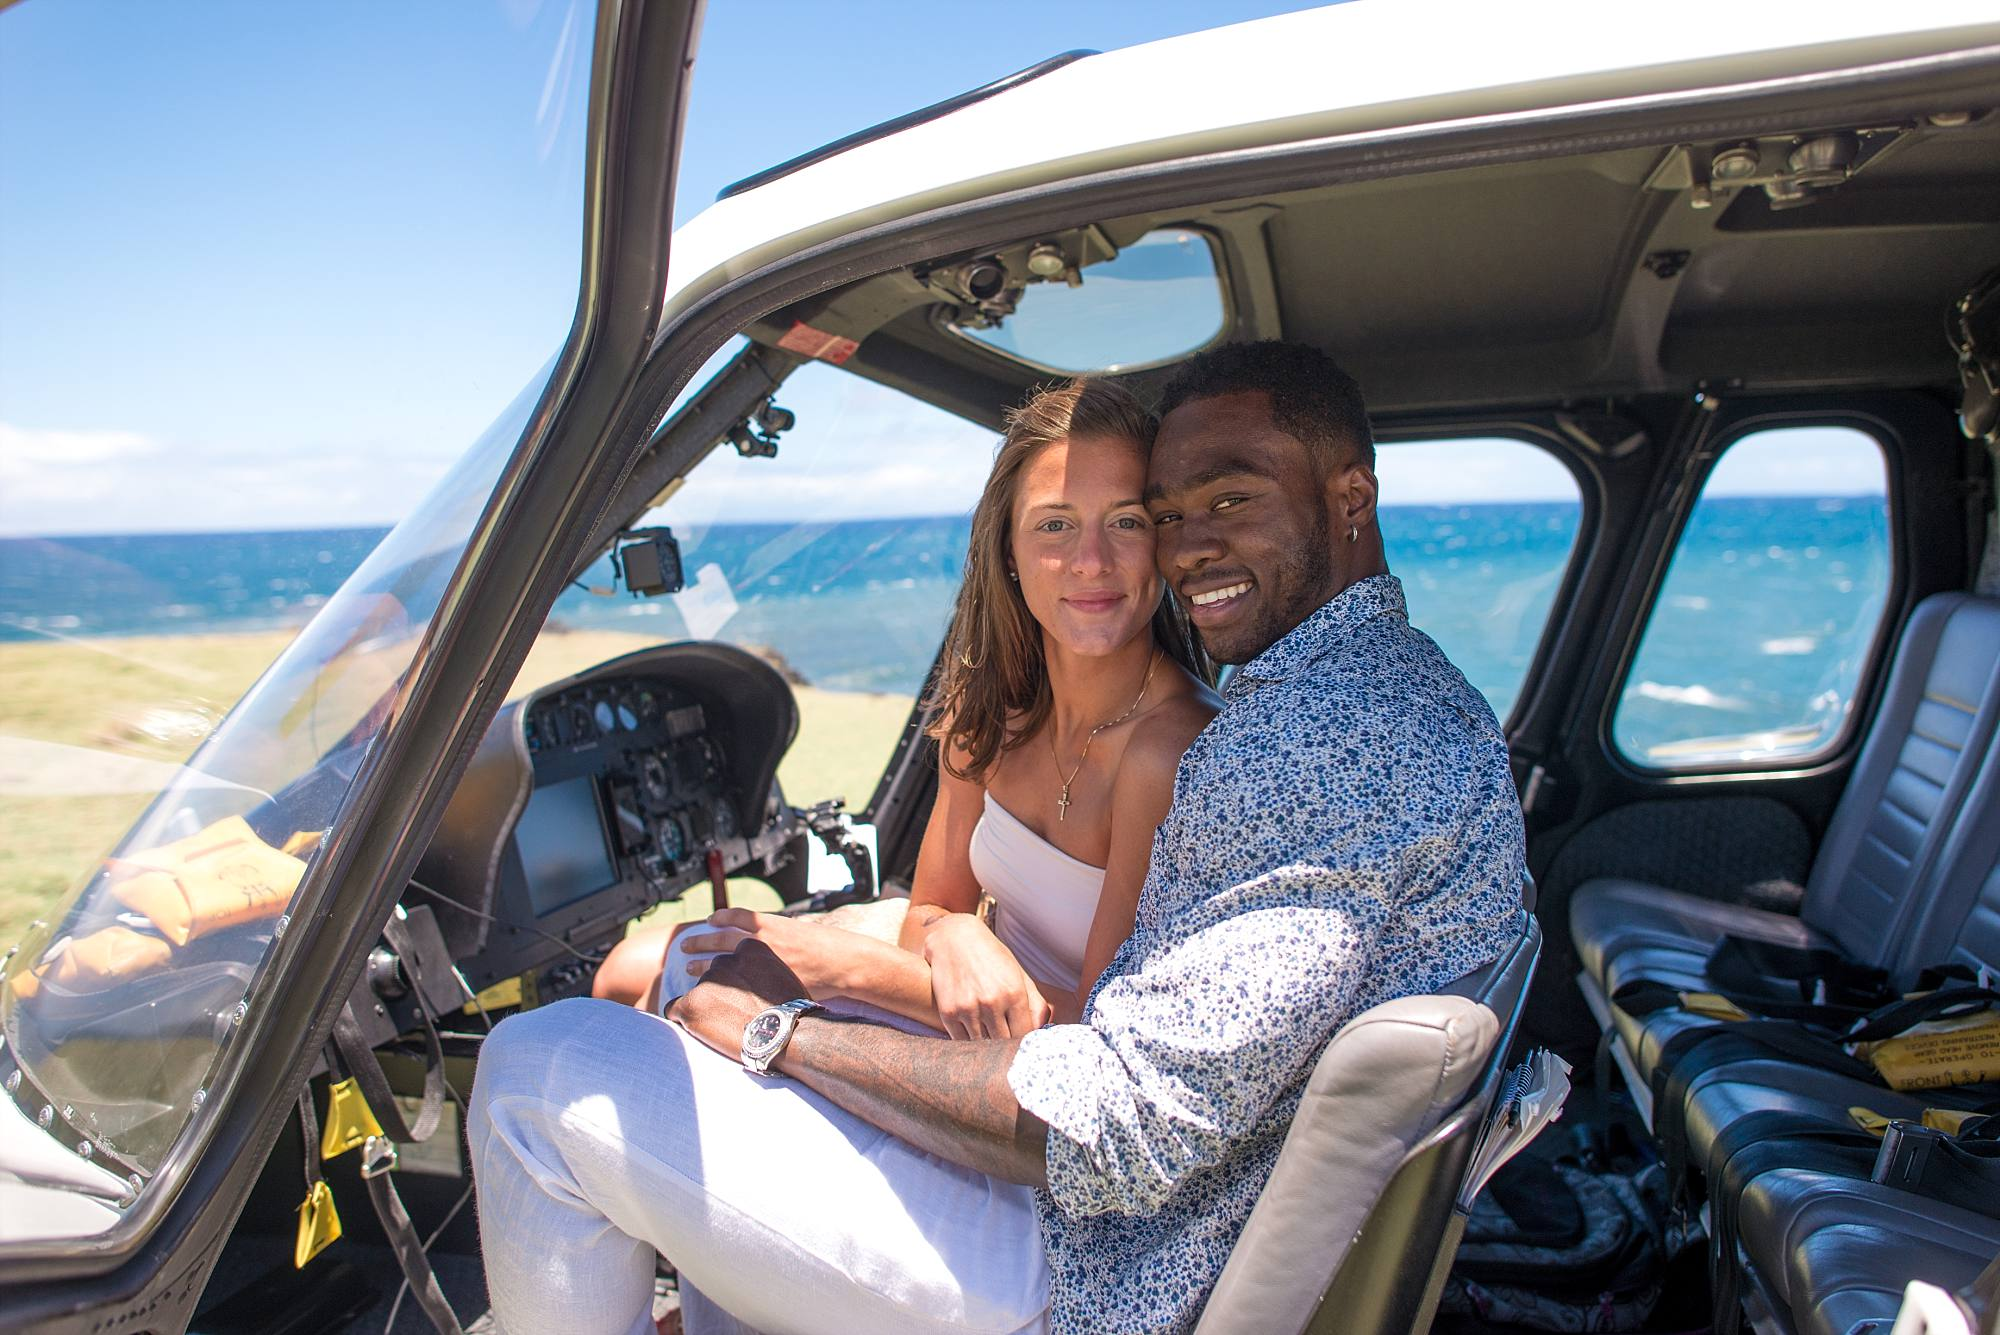 Maui Helicopter Proposal with Patriots Wide Receiver Brandin Cooks